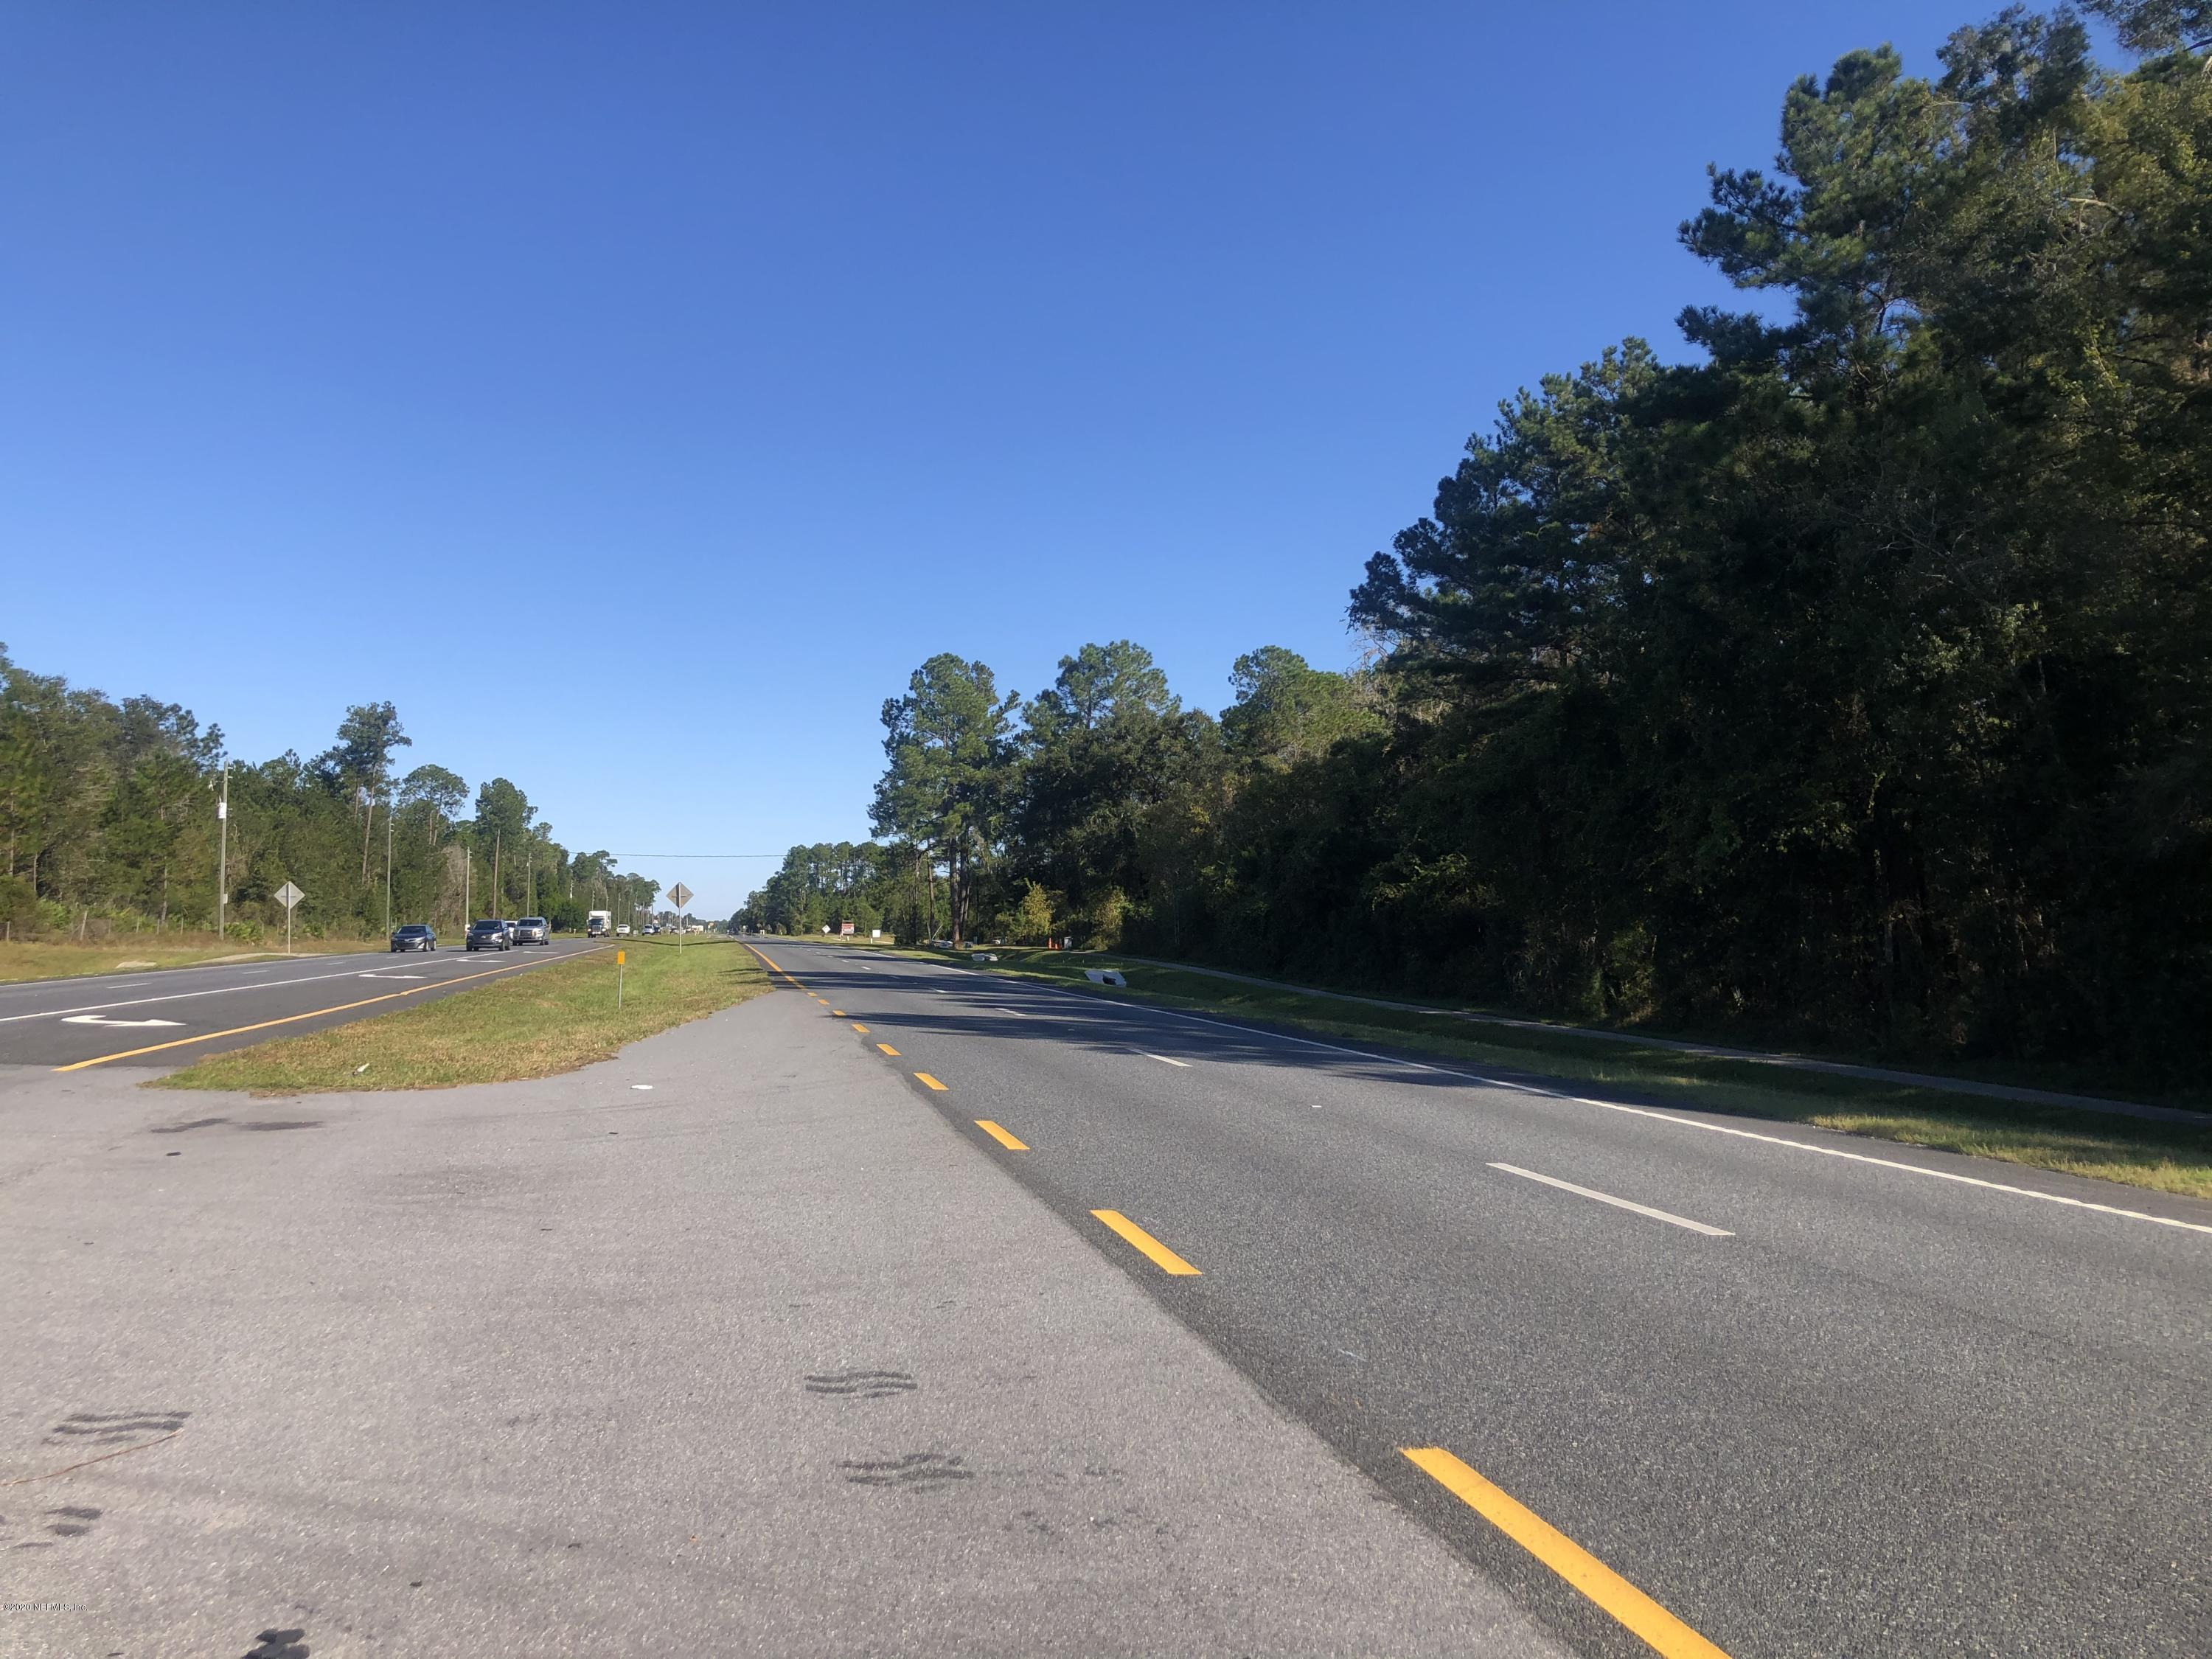 000 HWY 301, WALDO, FLORIDA 32694, ,Vacant land,For sale,HWY 301,1080953